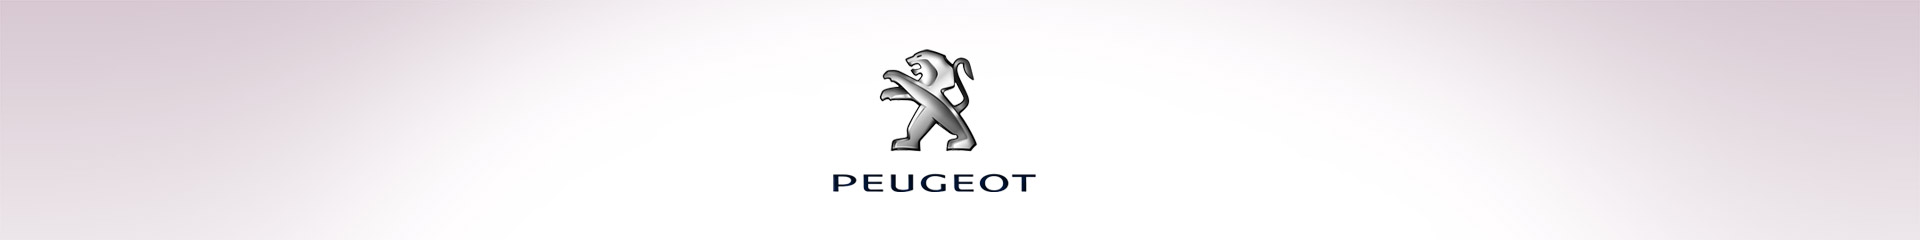 Ricambi scooter Peugeot